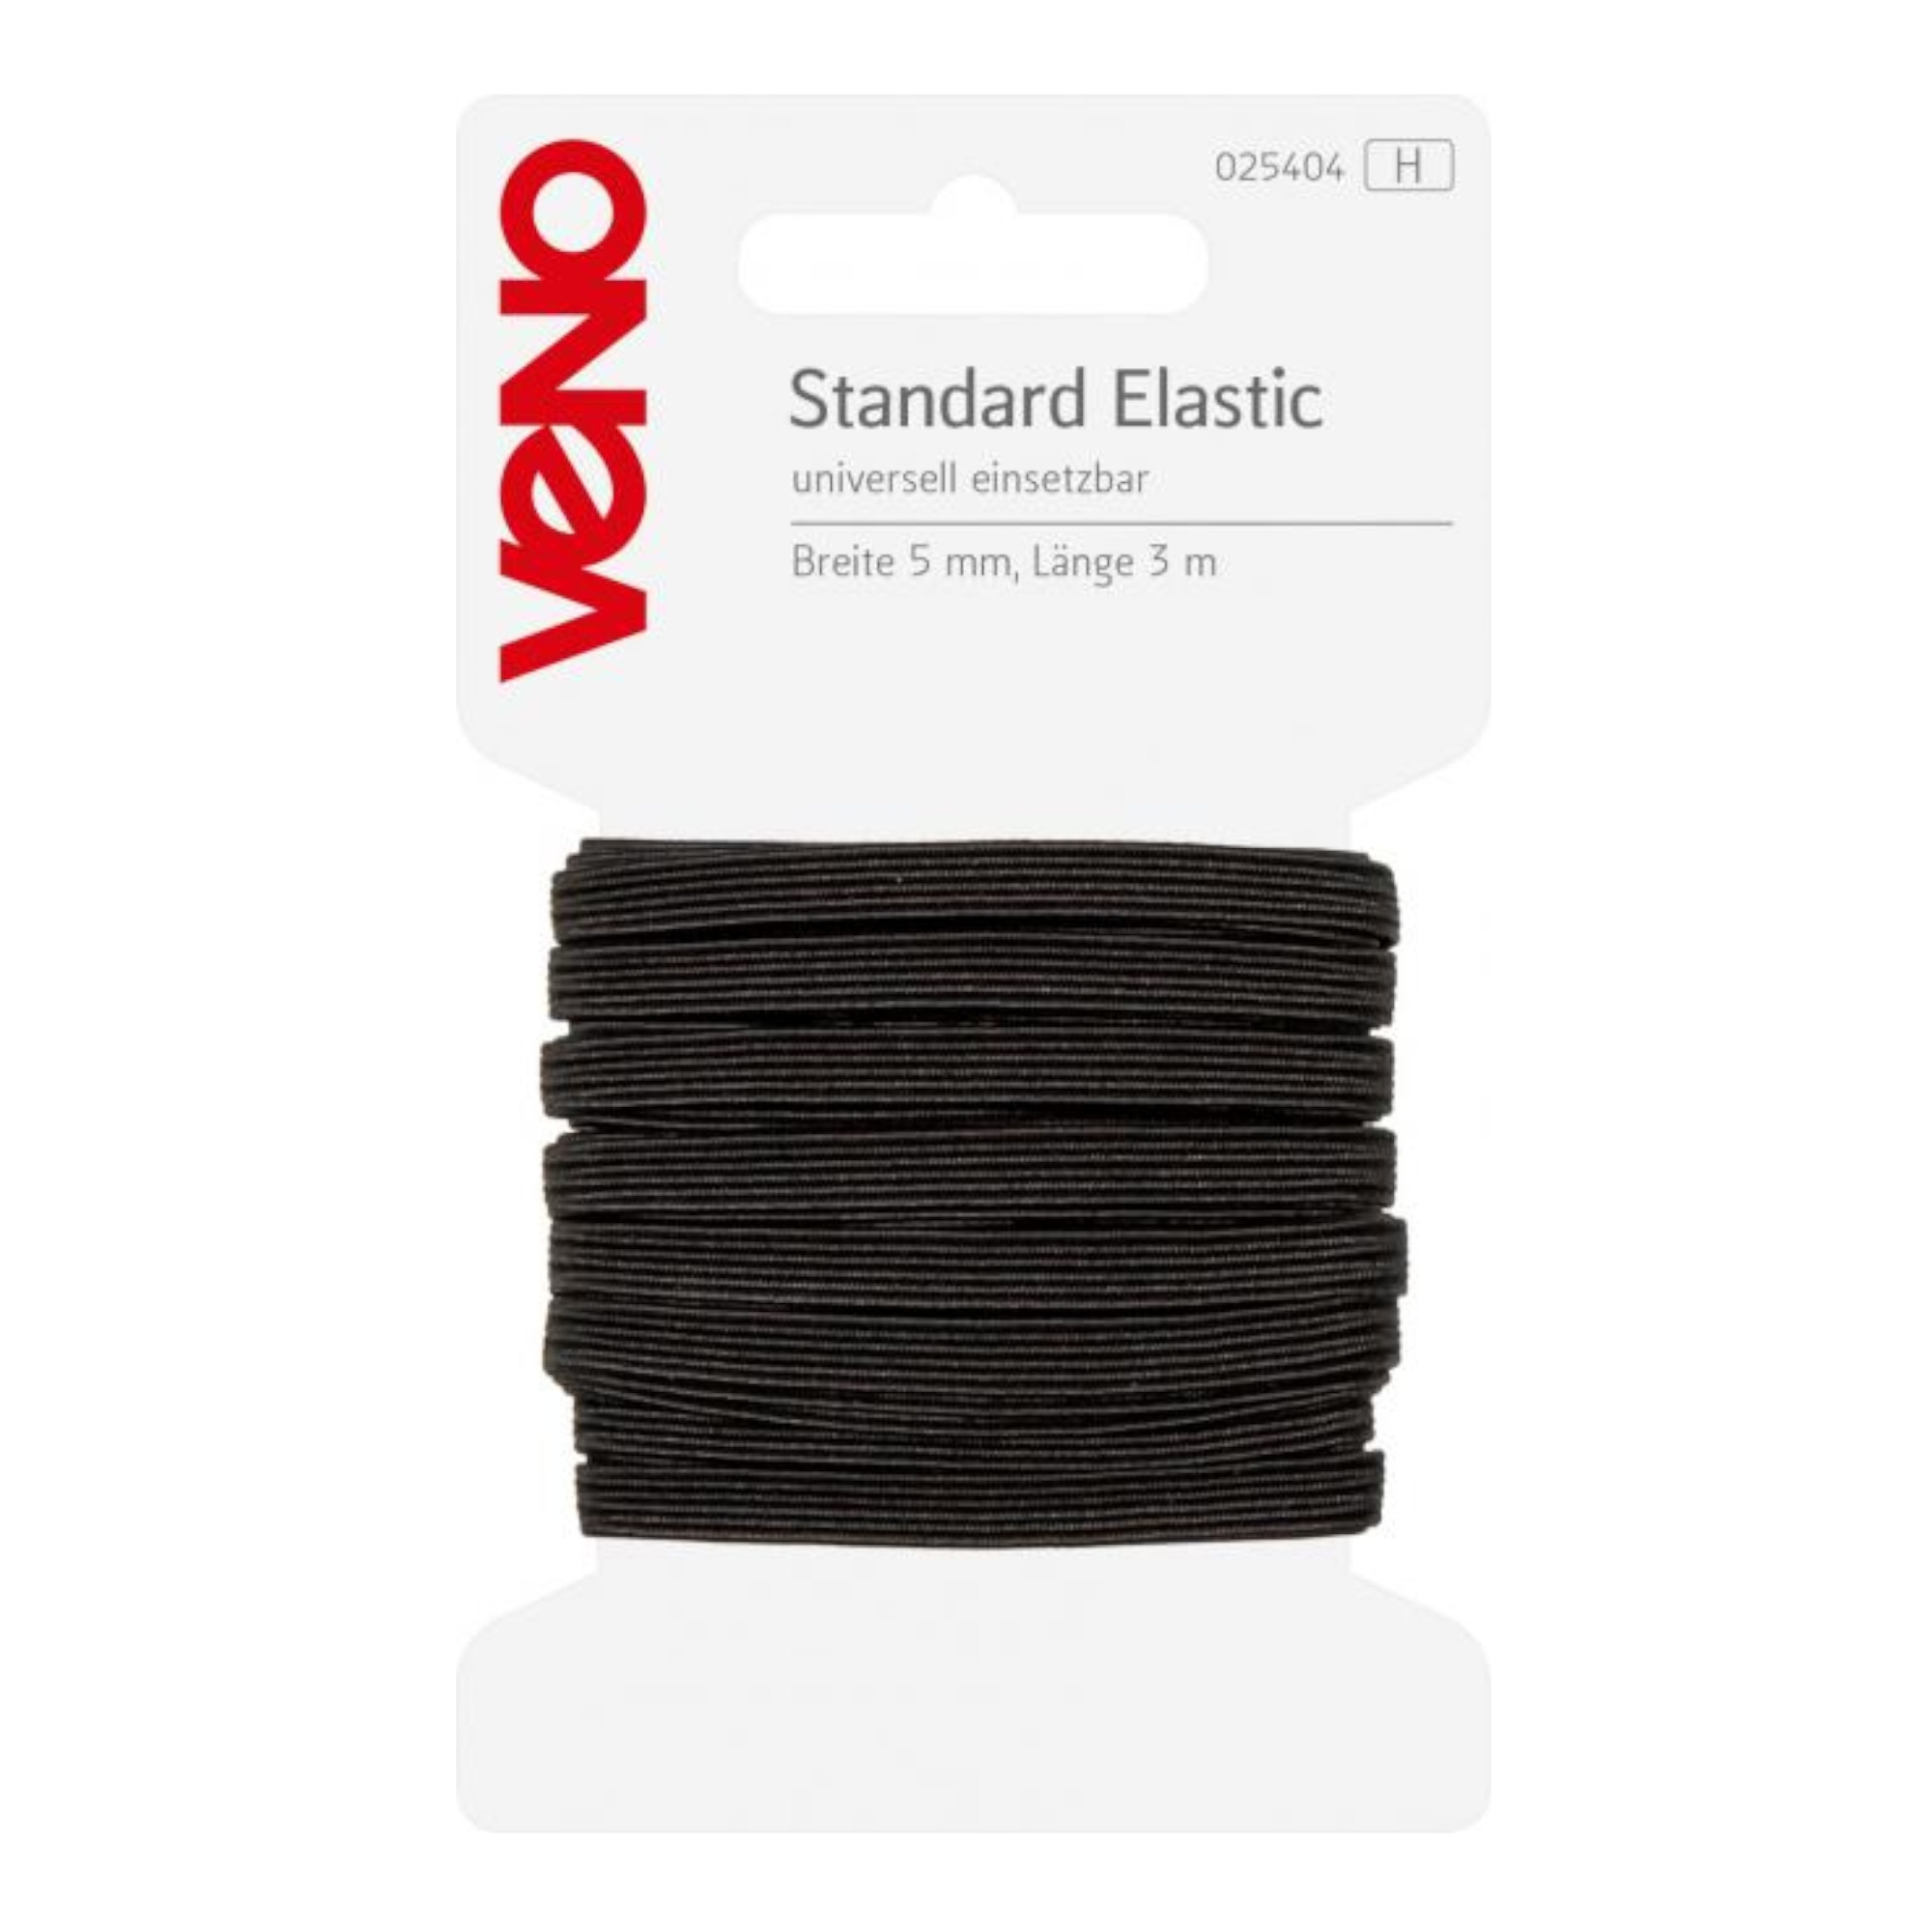 Elatic-band, 3 m, 5 mm breed, zwart